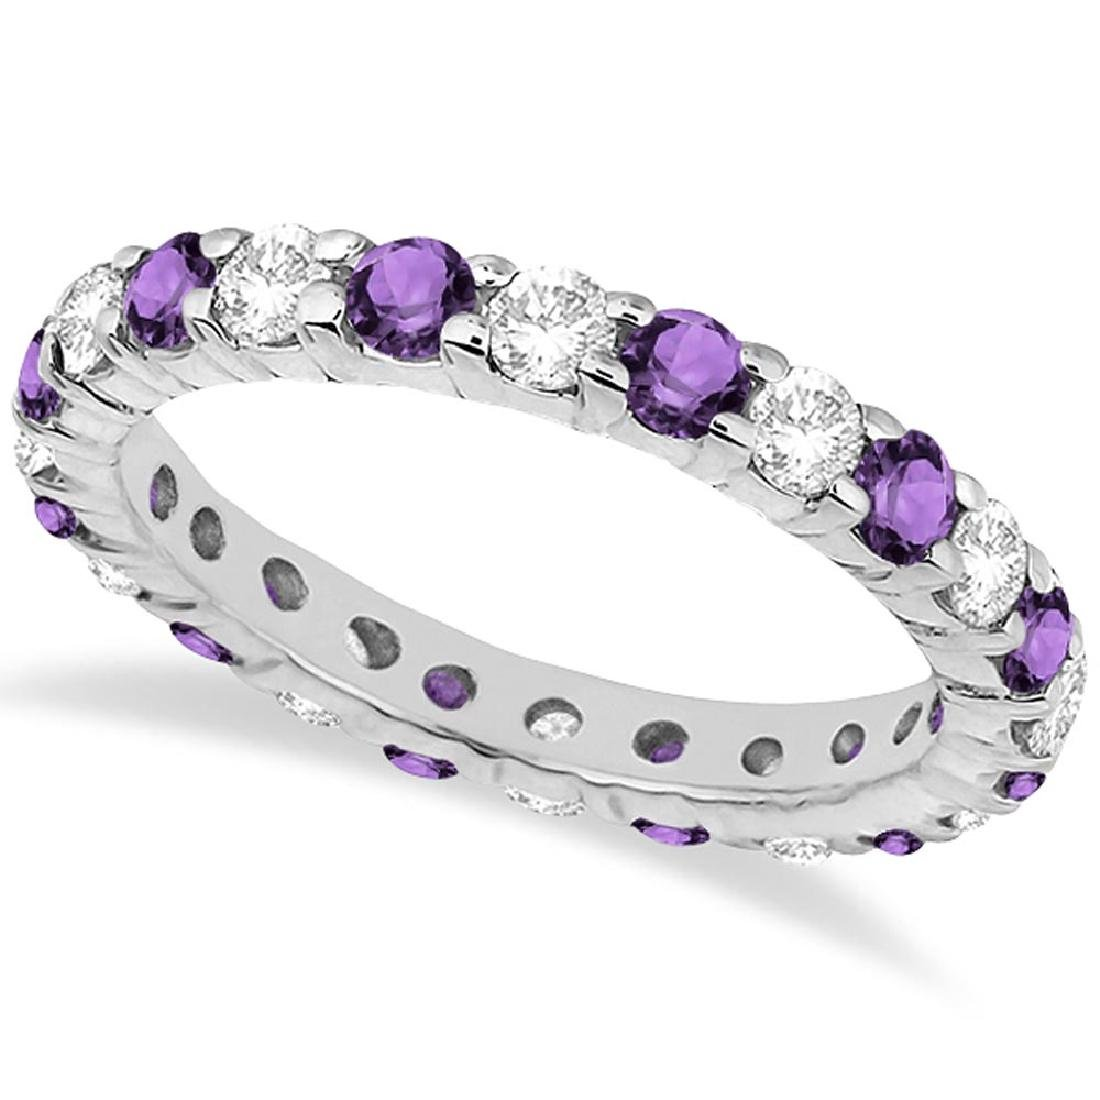 Eternity Diamond and Amethyst Ring Band 14k White Gold